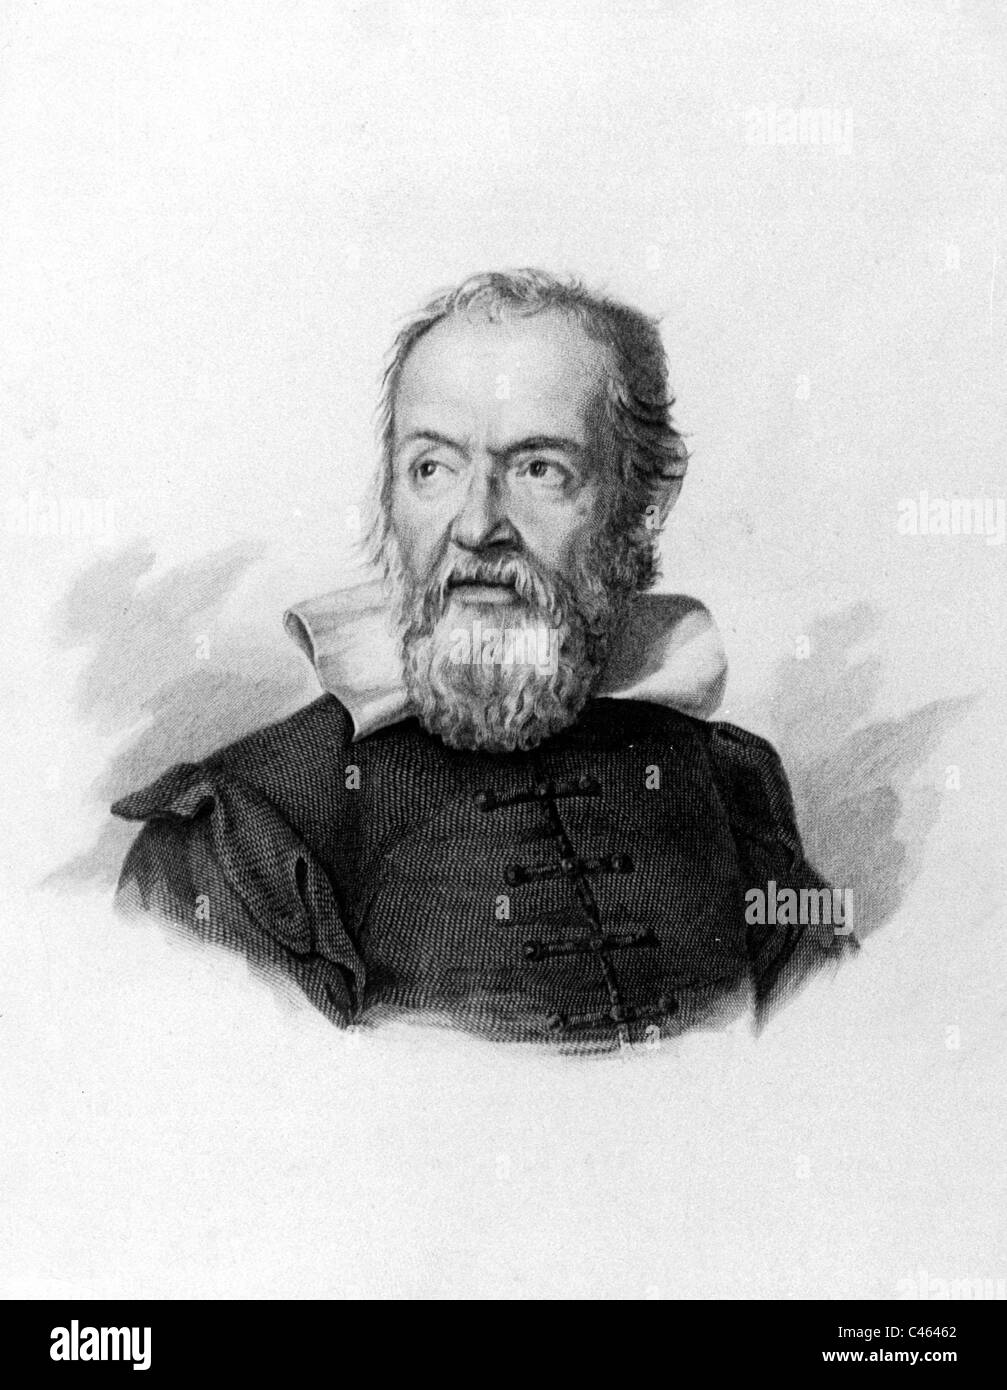 a biography of galileo galilei a major contributor to scientific revolution His contributions to science include the galilean invariance and discovery of isochronism in pendulums know why galileo is considered the father of modern science prior to galileo galilei, scientific inquiry relied heavily on ipse dixit (he himself said it), a method in which arguments were.